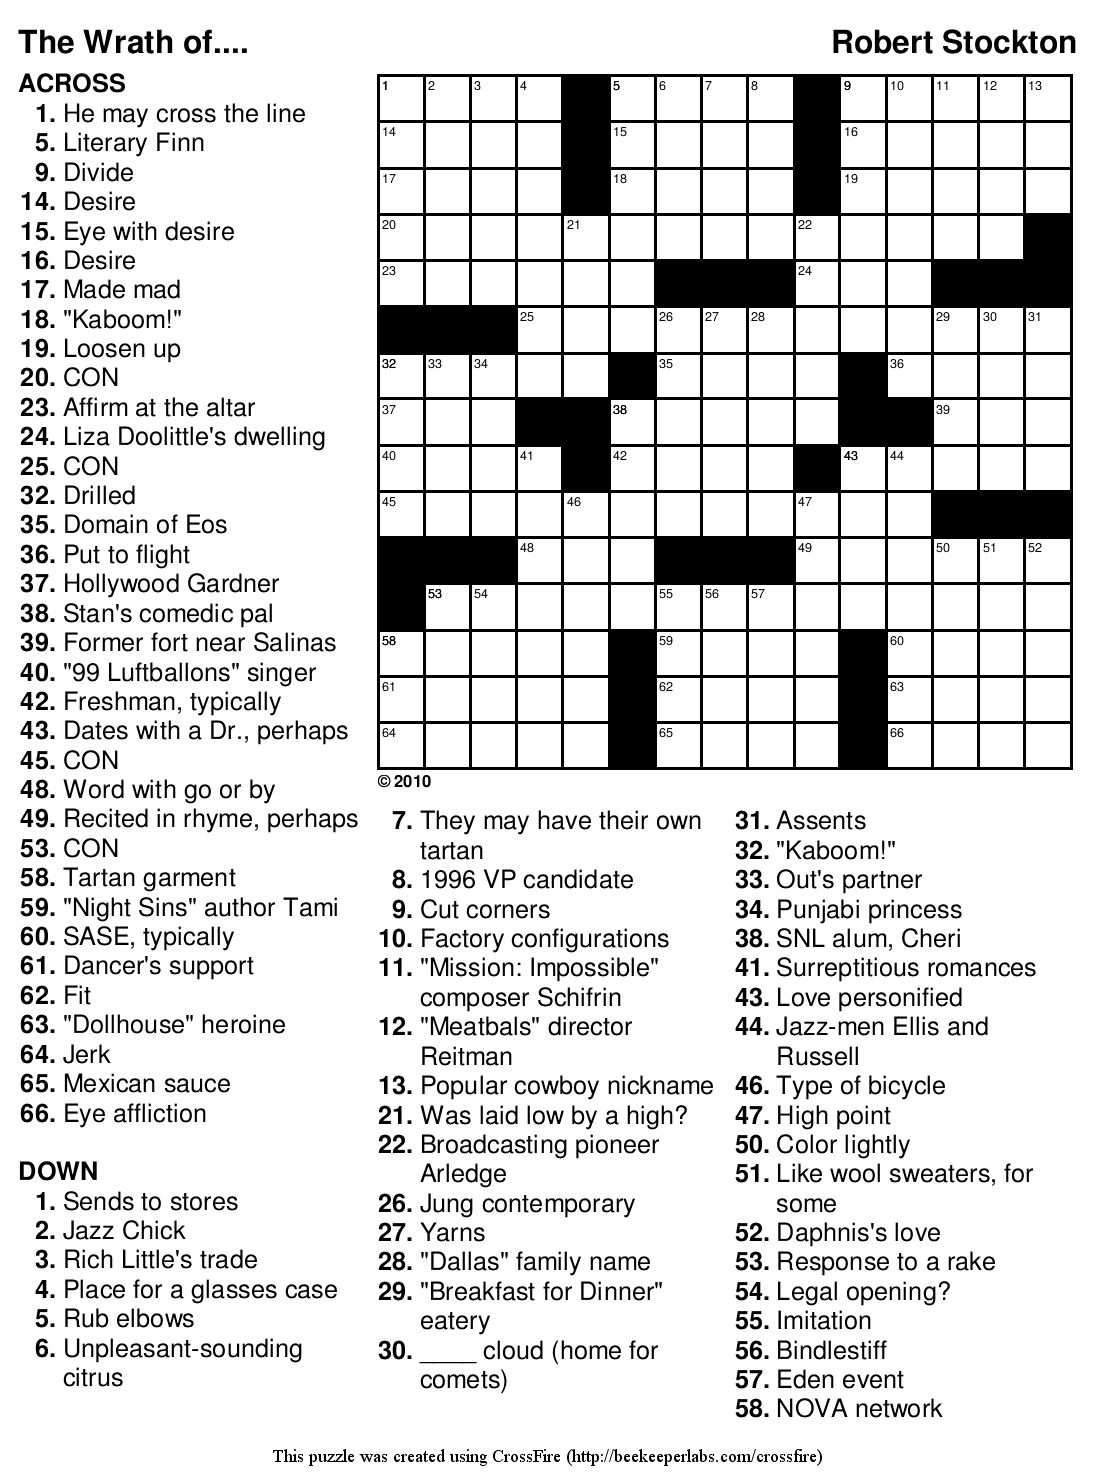 Marvelous Crossword Puzzles Easy Printable Free Org | Chas's Board - Free Printable Crossword Puzzles Easy For Adults